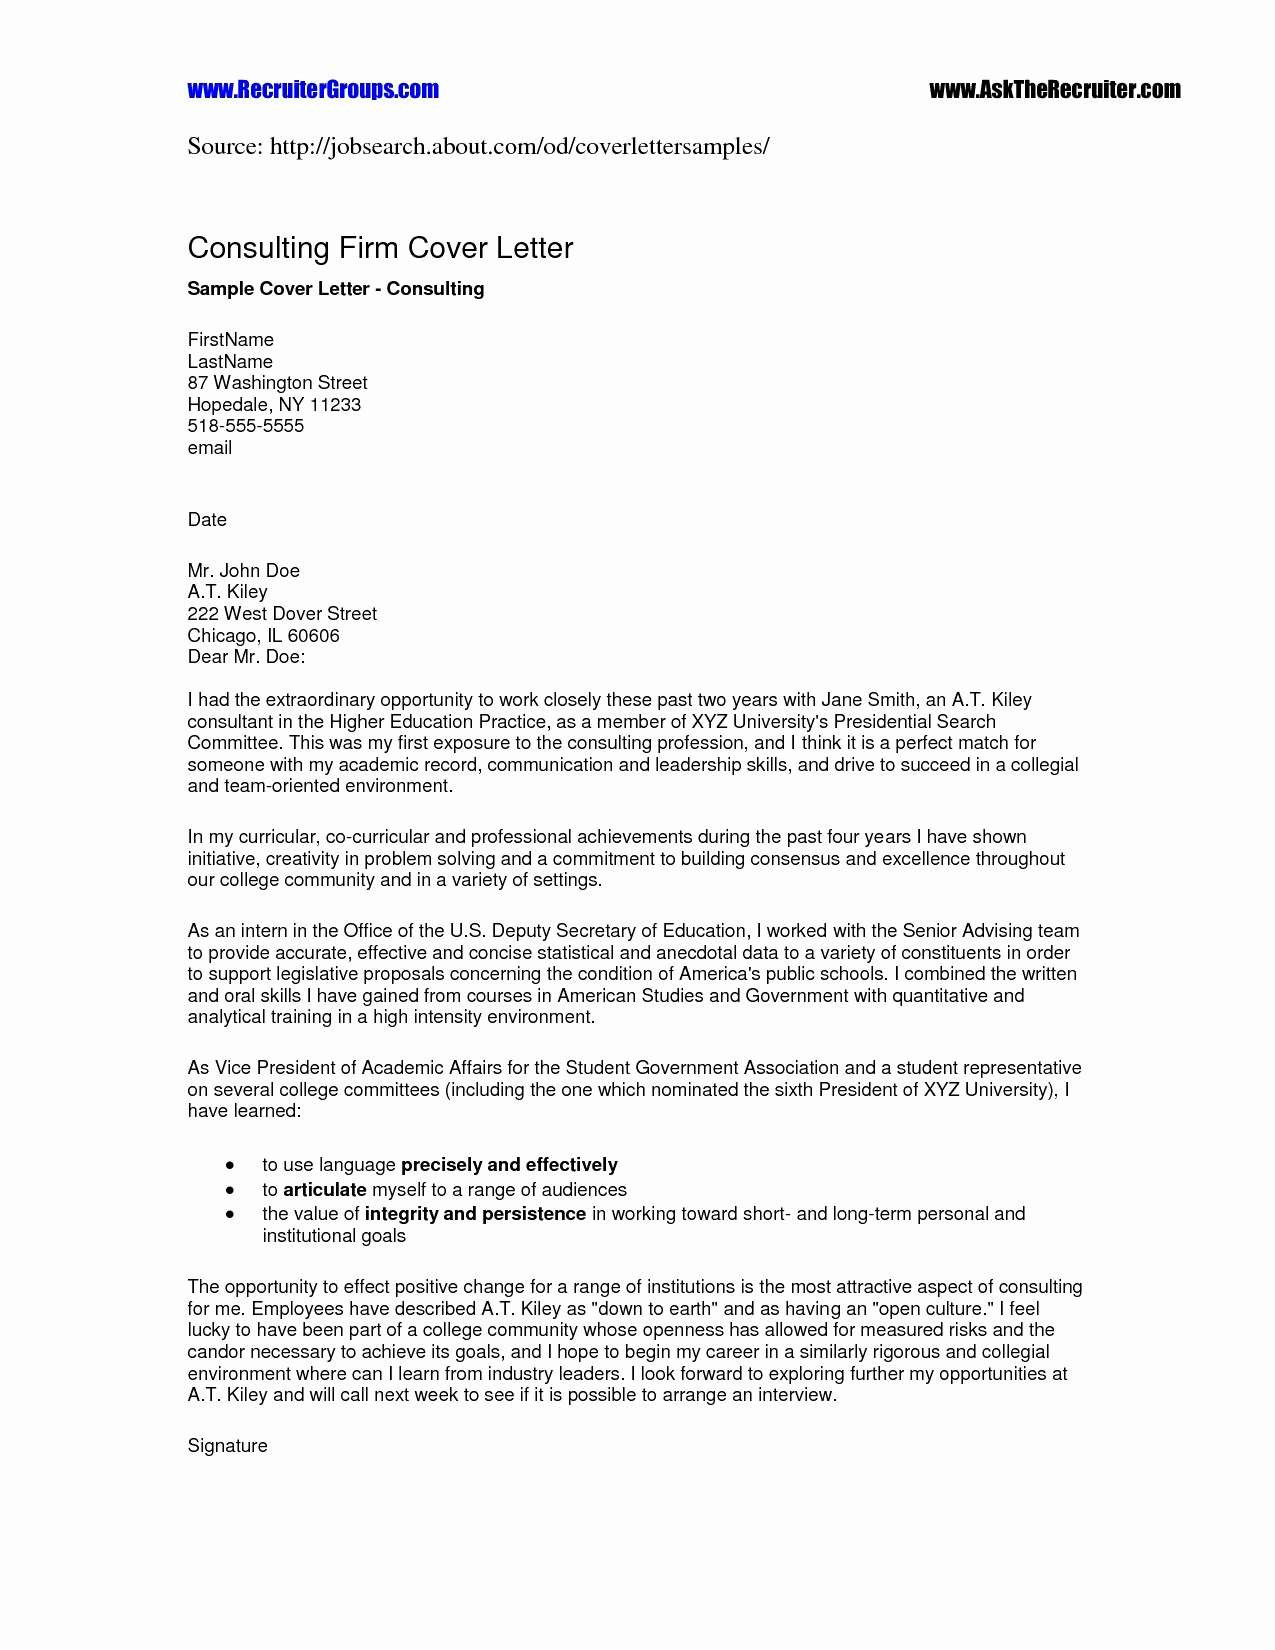 Employment Cover Letter Template Word Examples Letter Templates